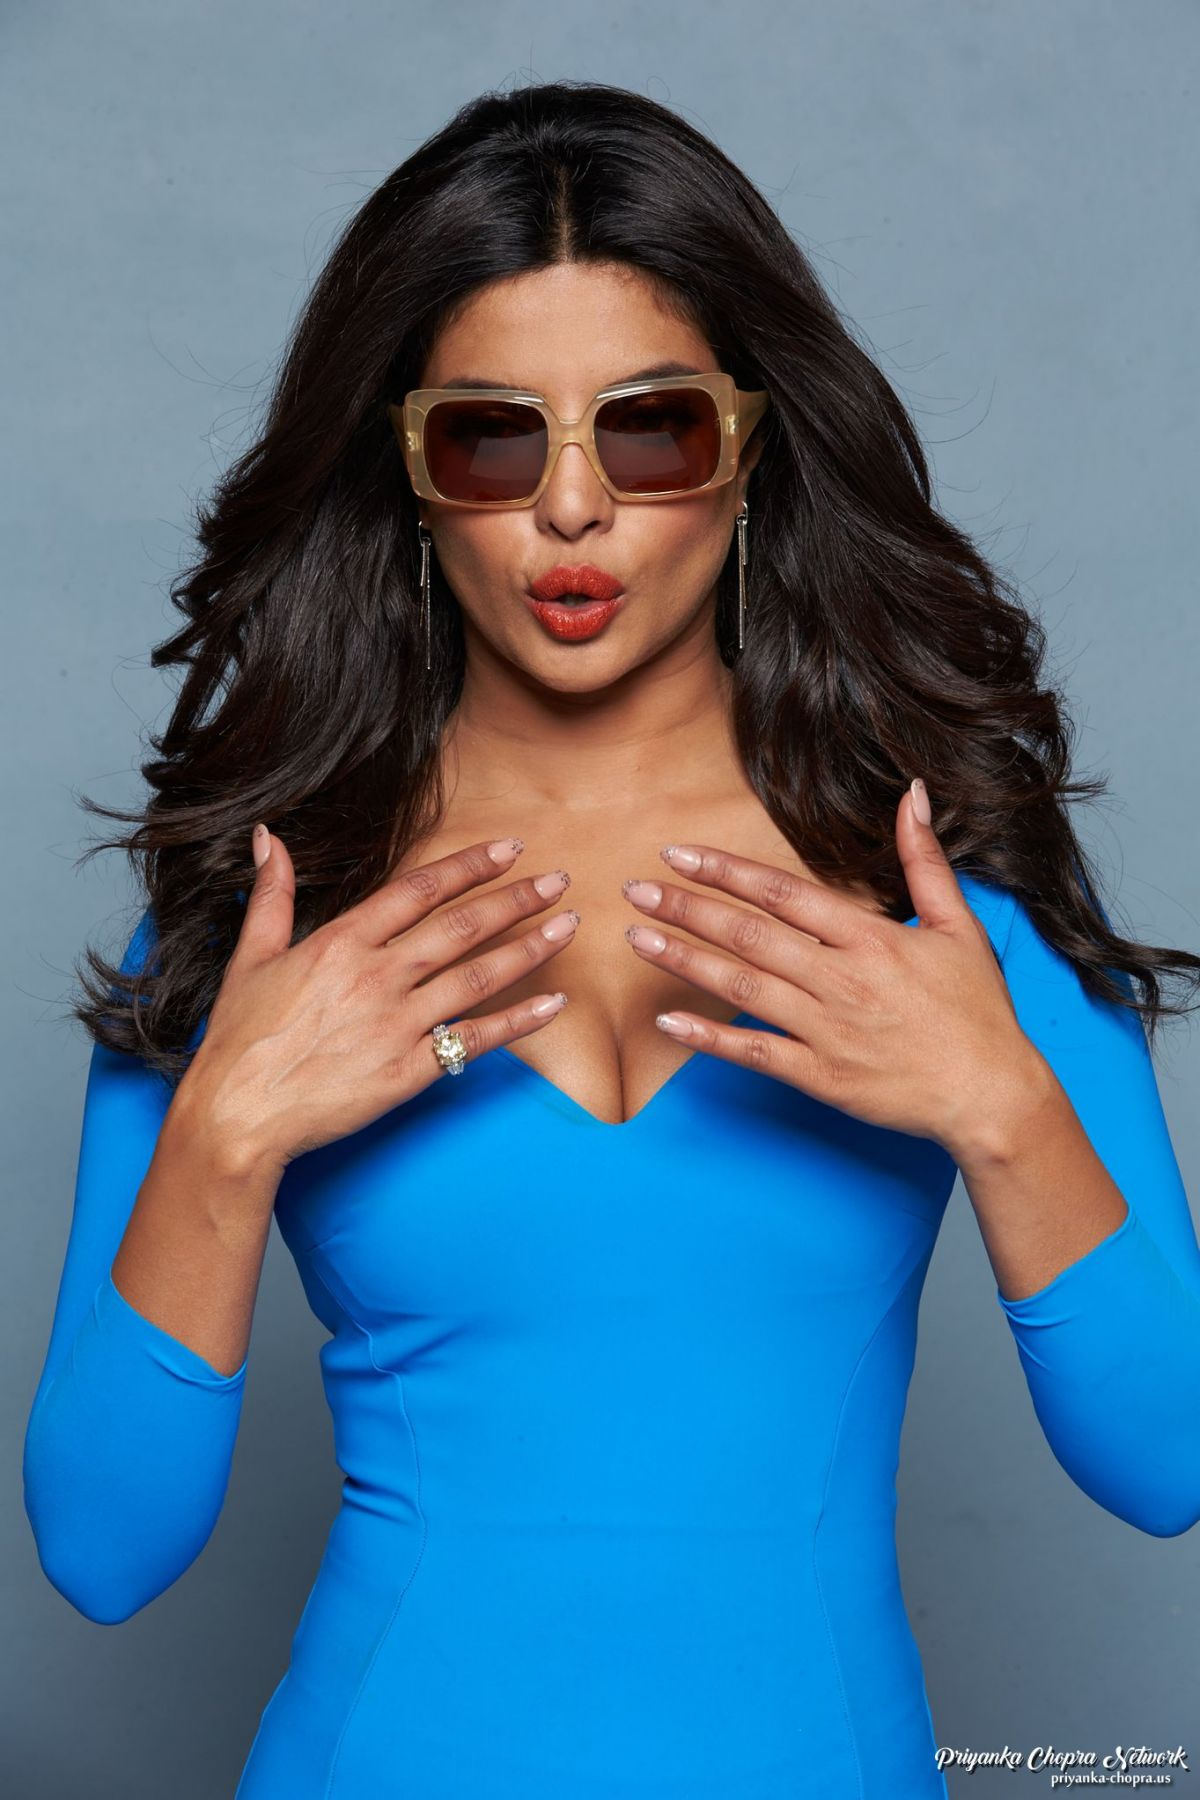 priyanka chopra - photo #30